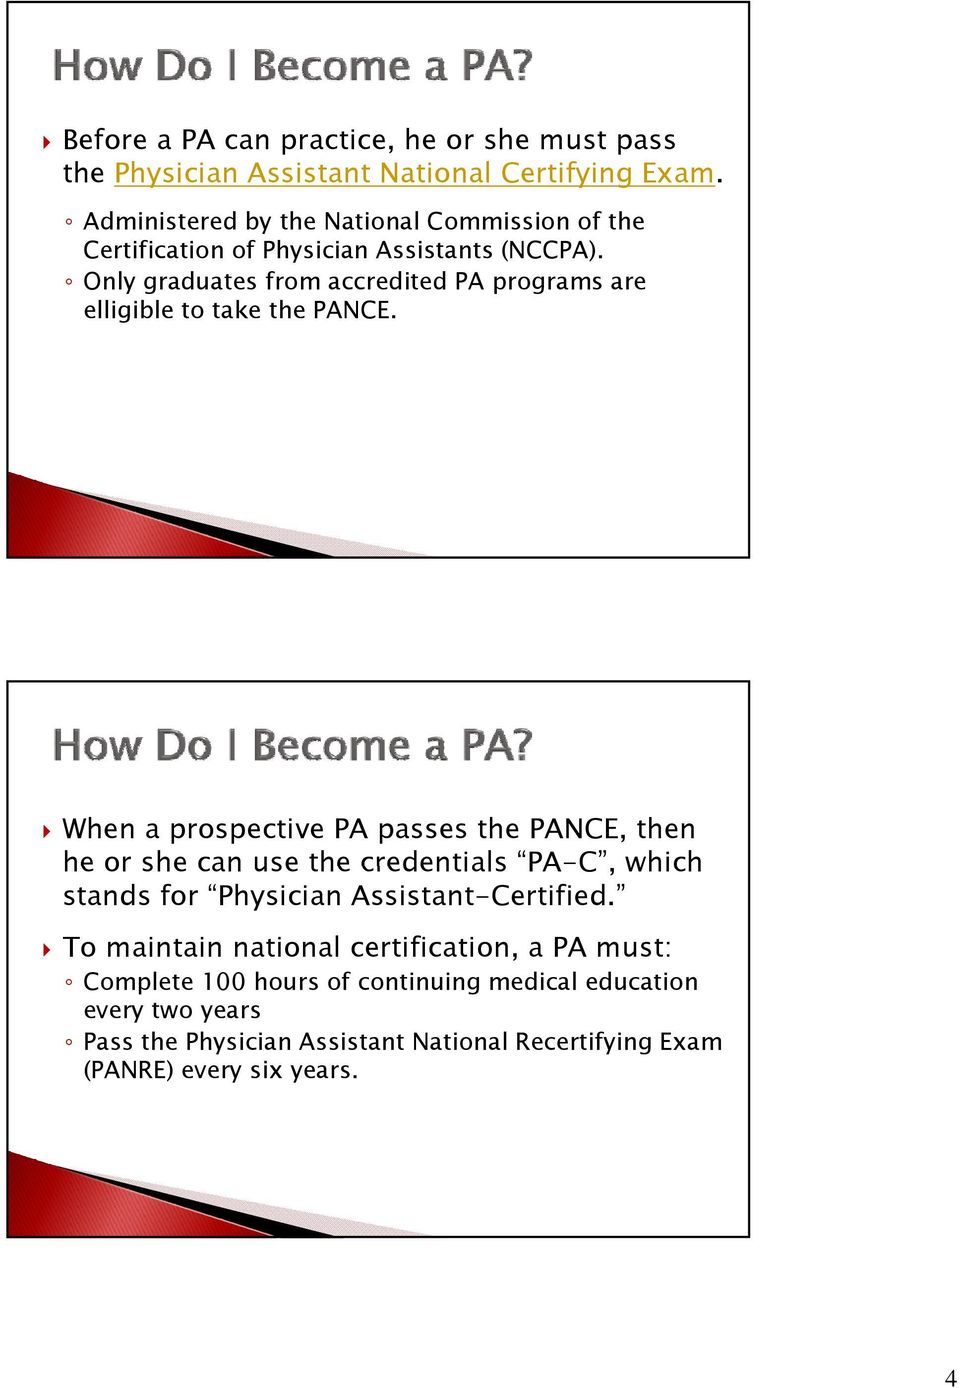 Only graduates from accredited PA programs are elligible to take the PANCE.